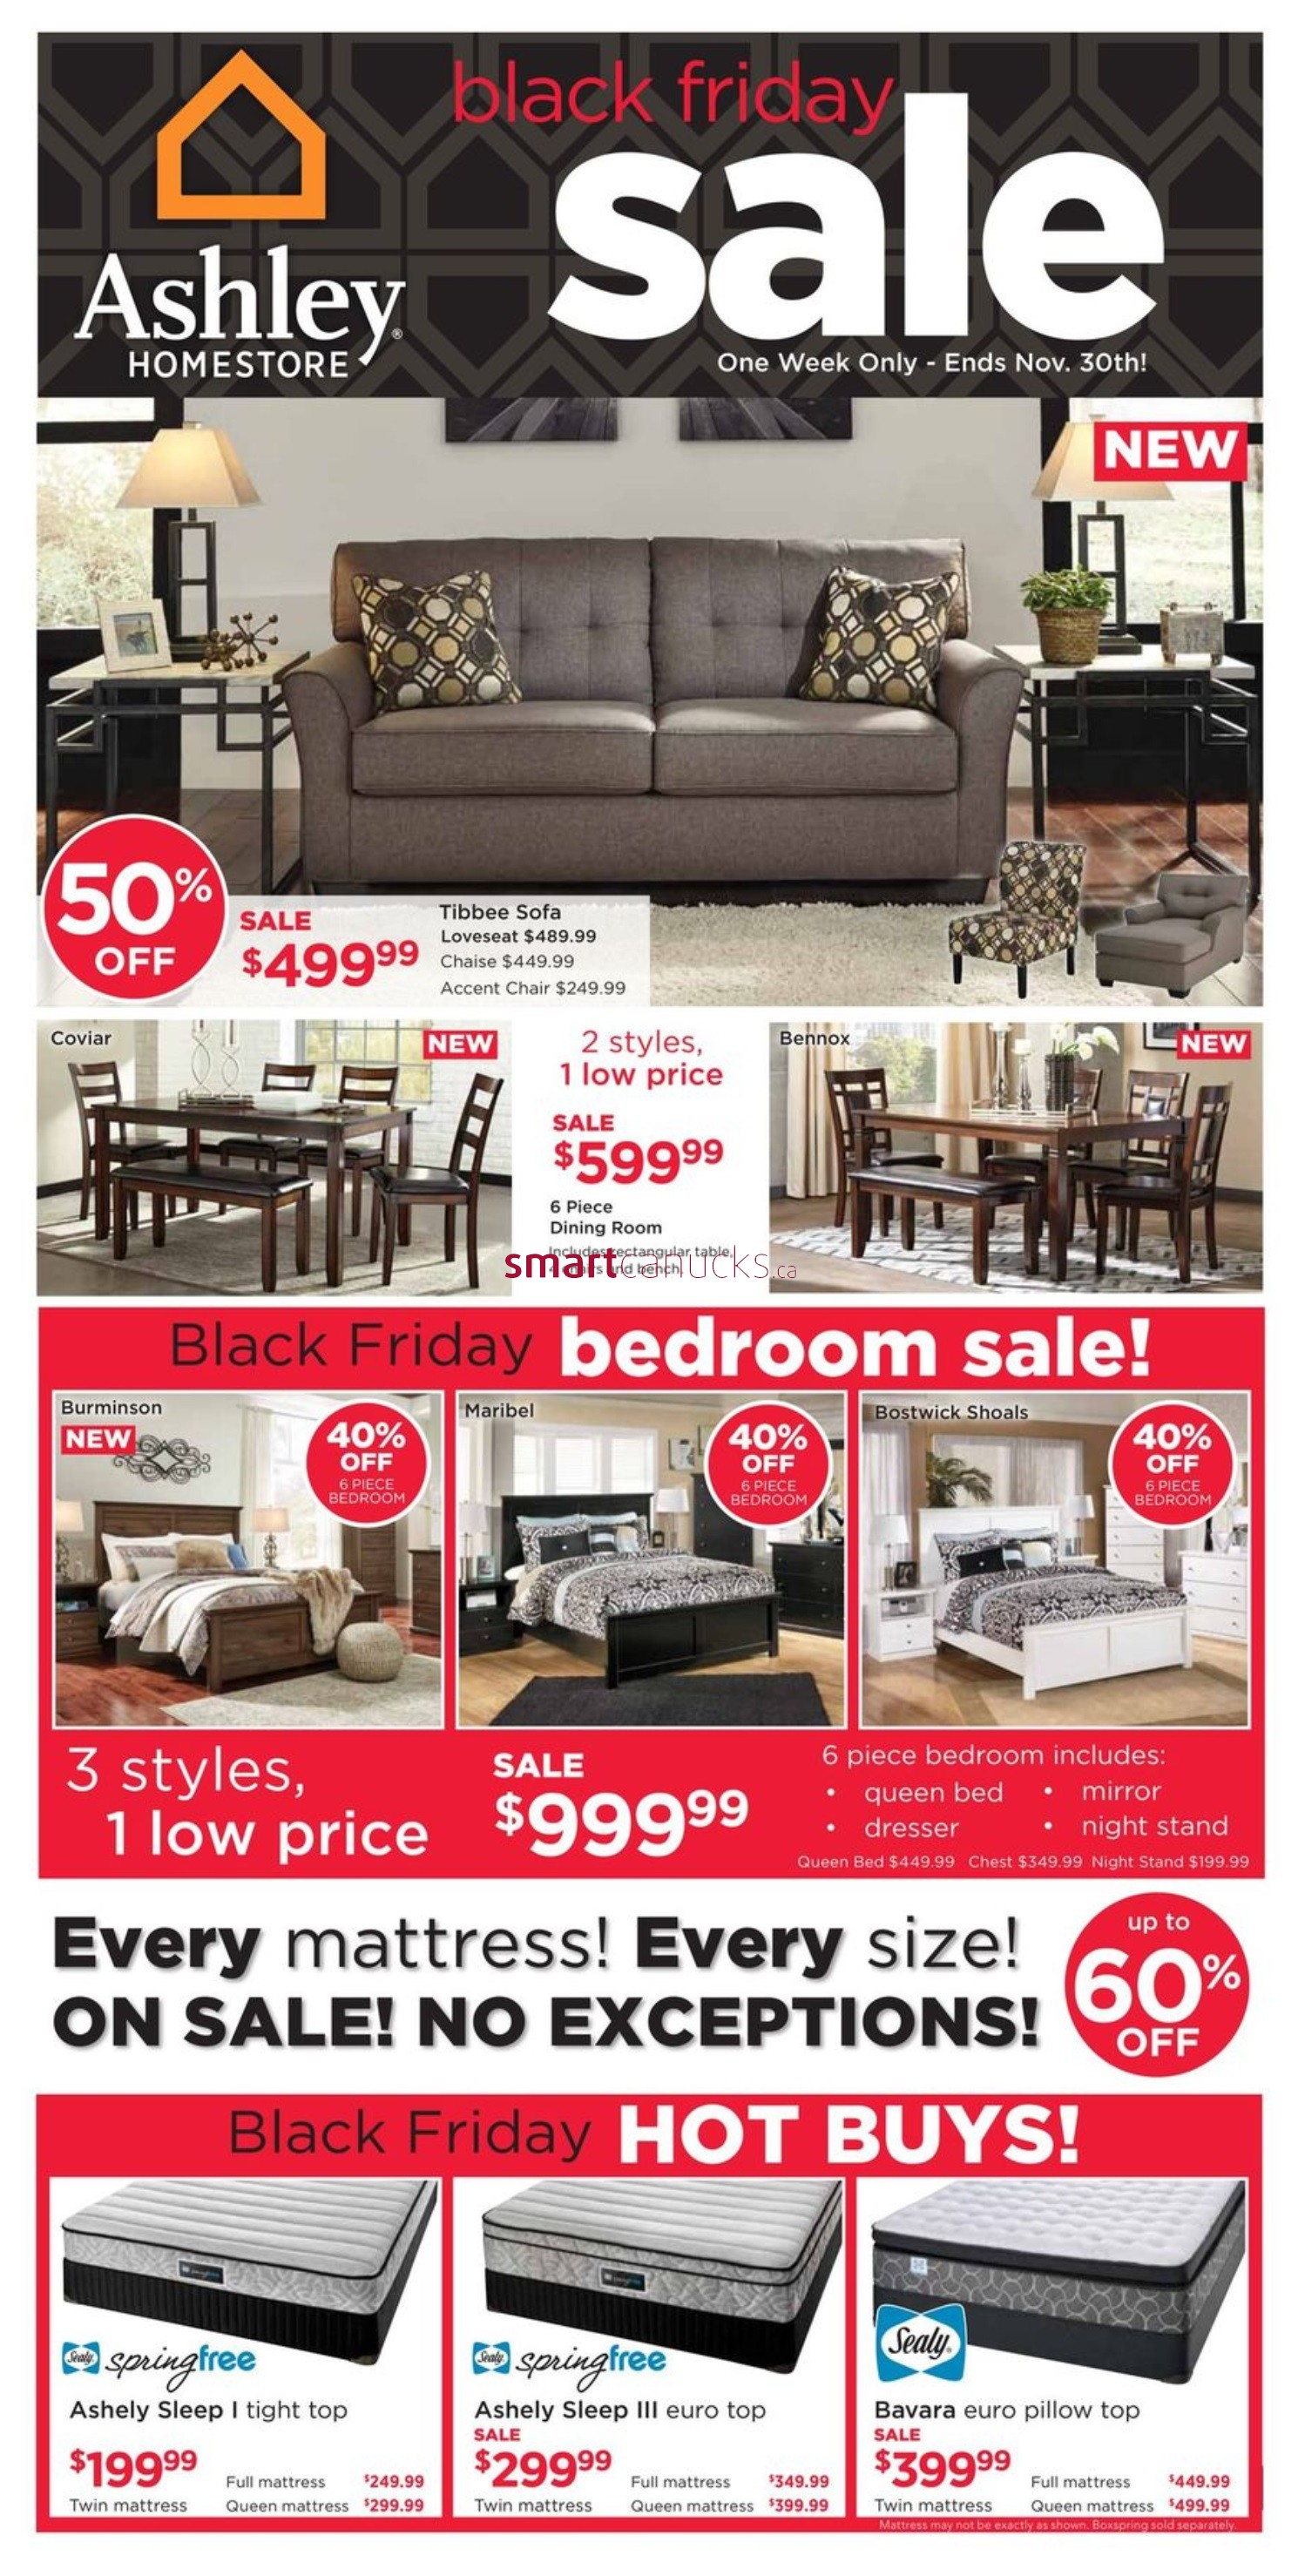 Ashley homestore coupon code